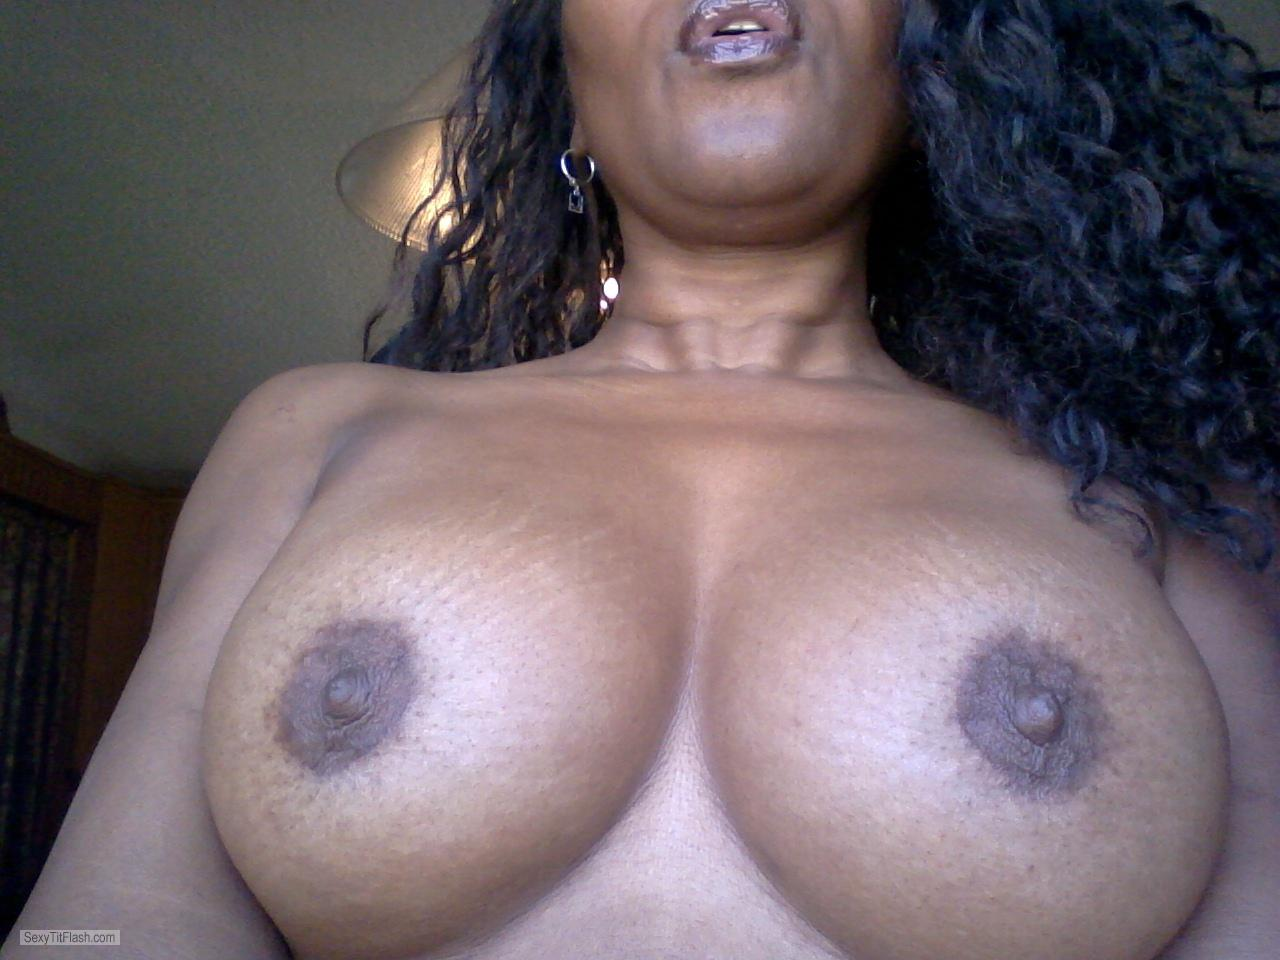 Tit Flash: My Big Tits (Selfie) - Samantha from United States